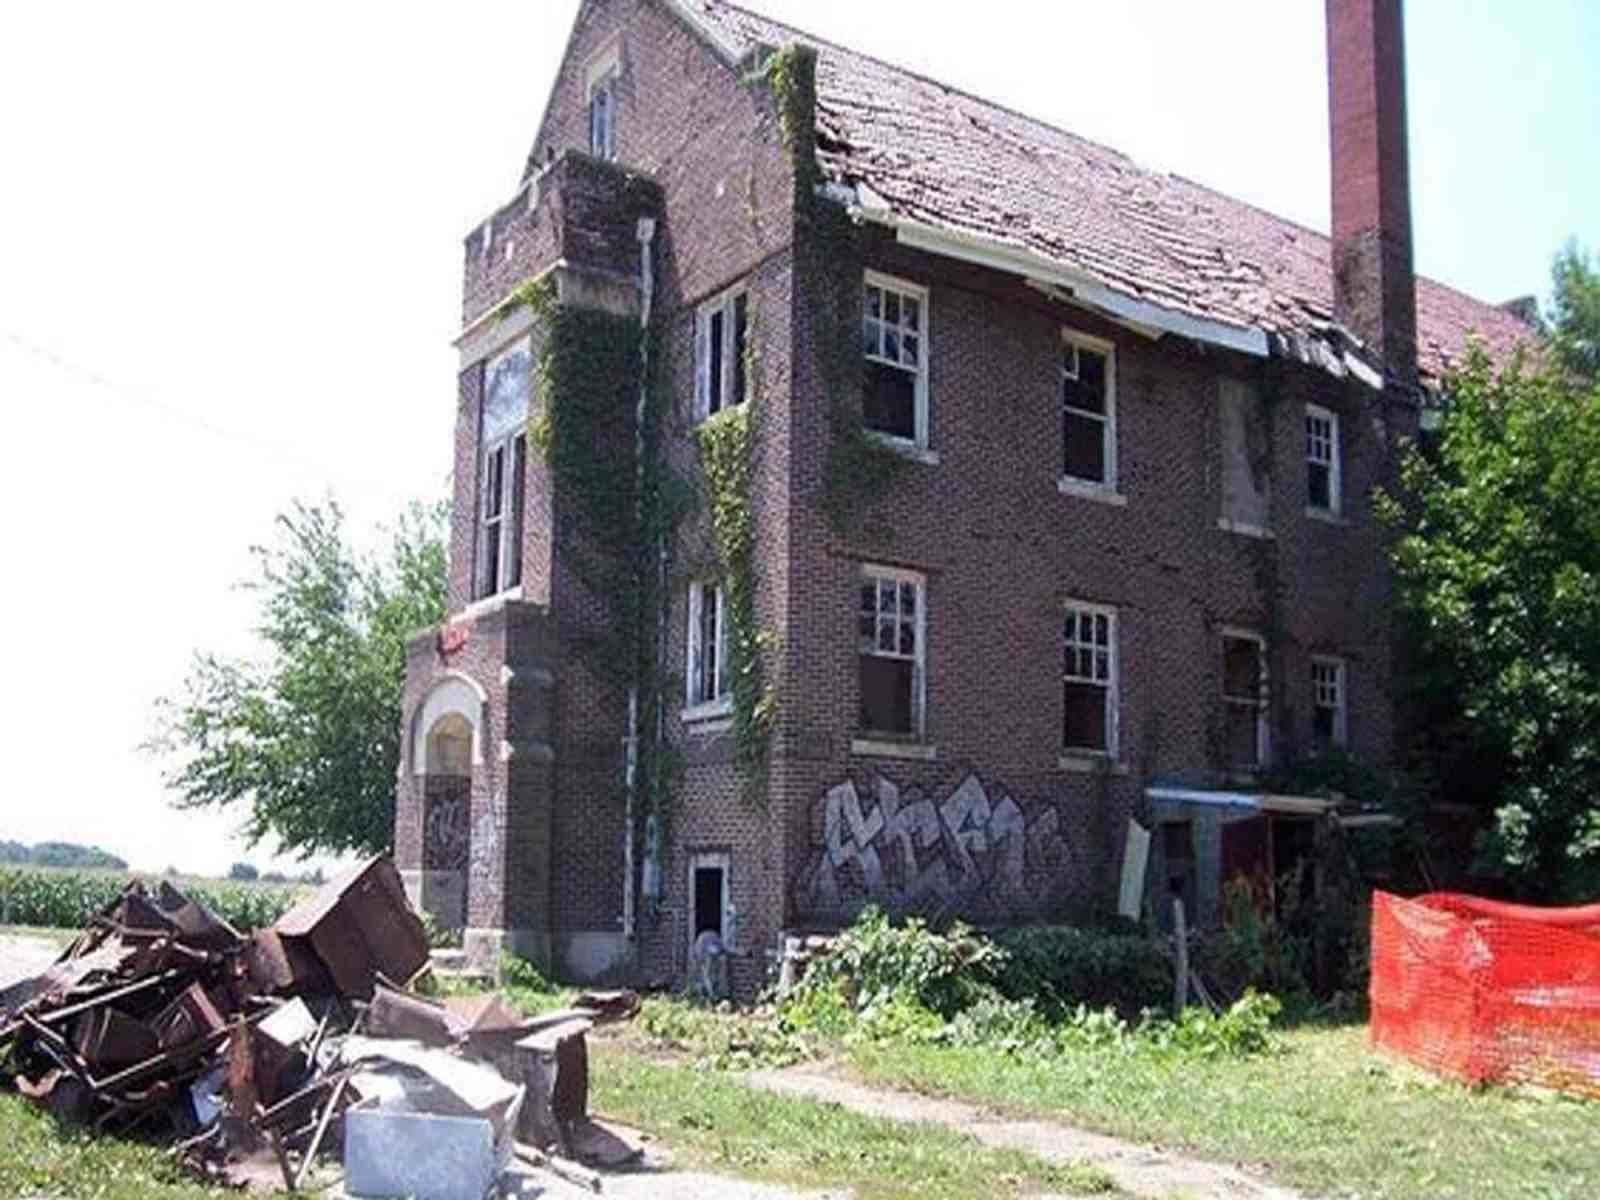 """Anyone from Illinois knows of at least one """"haunted"""" place; it's basically a must. From graveyards to hotels, Illinois is home to some of the absolute spookiest places around the state. Here are the 10 most haunted places in Illinois you need to visit...if you dare."""